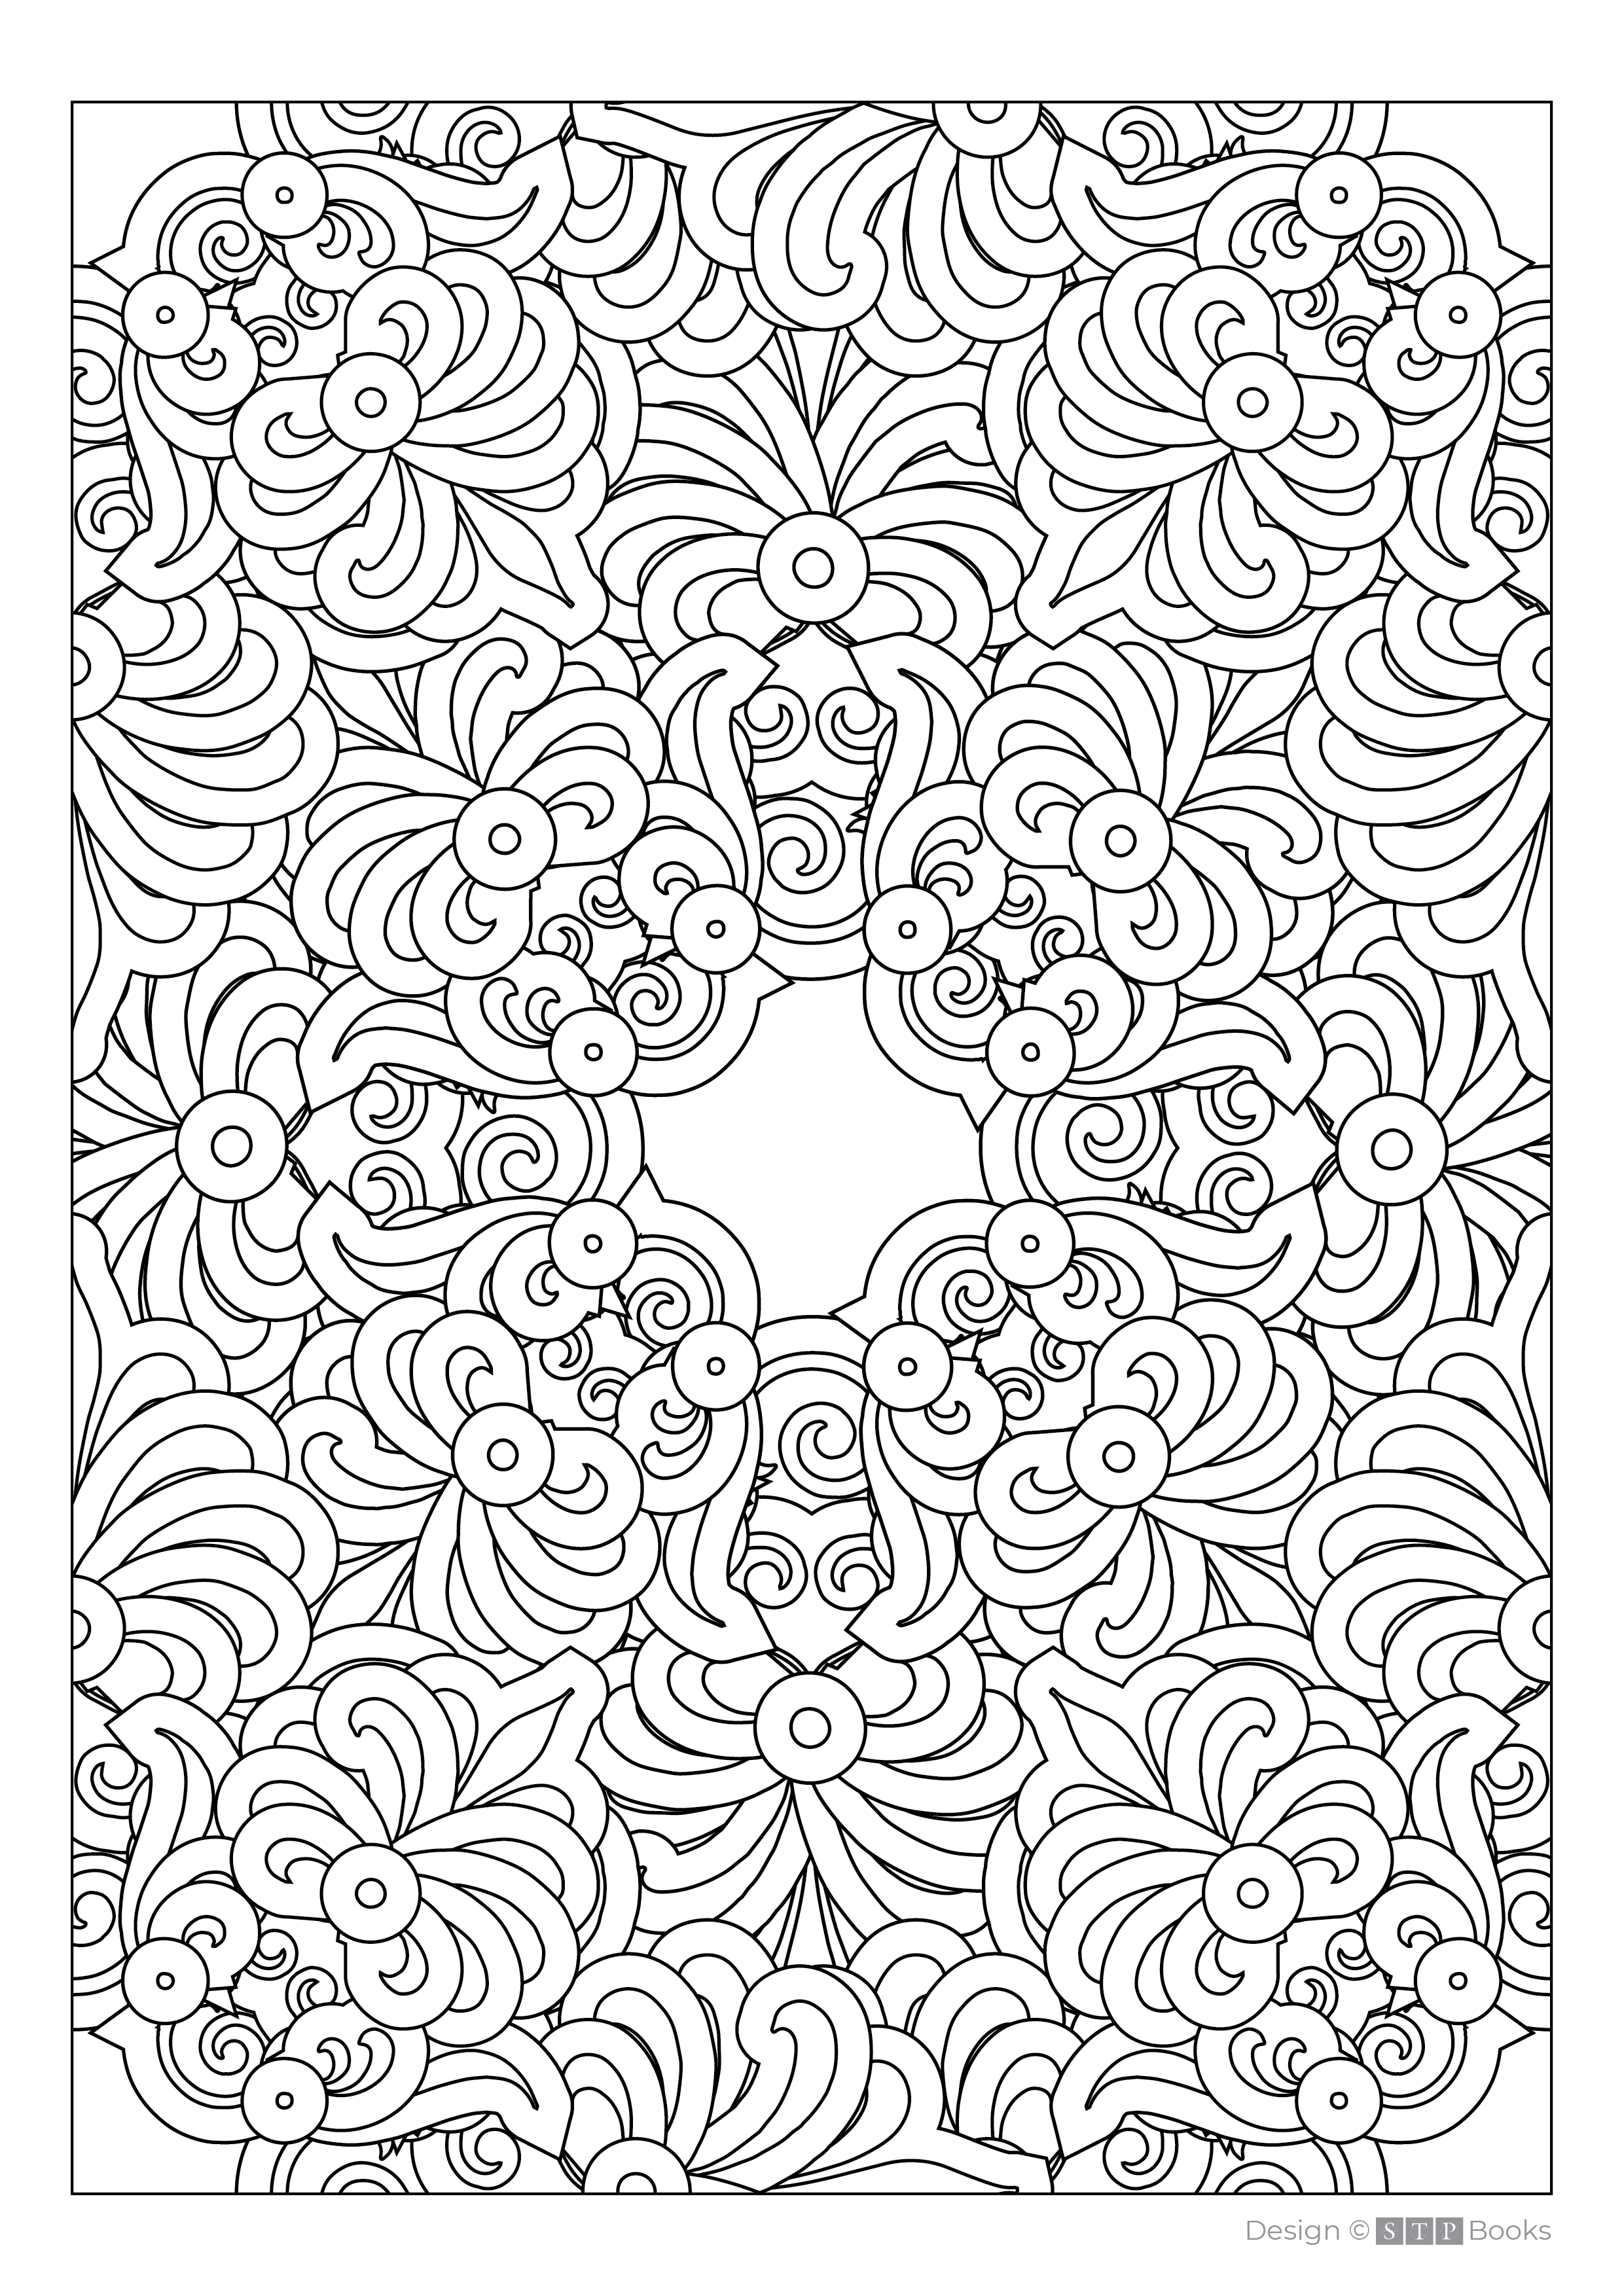 Free Adult Colouring Page Parents Teachers Decorative Design 003 STP Books.png